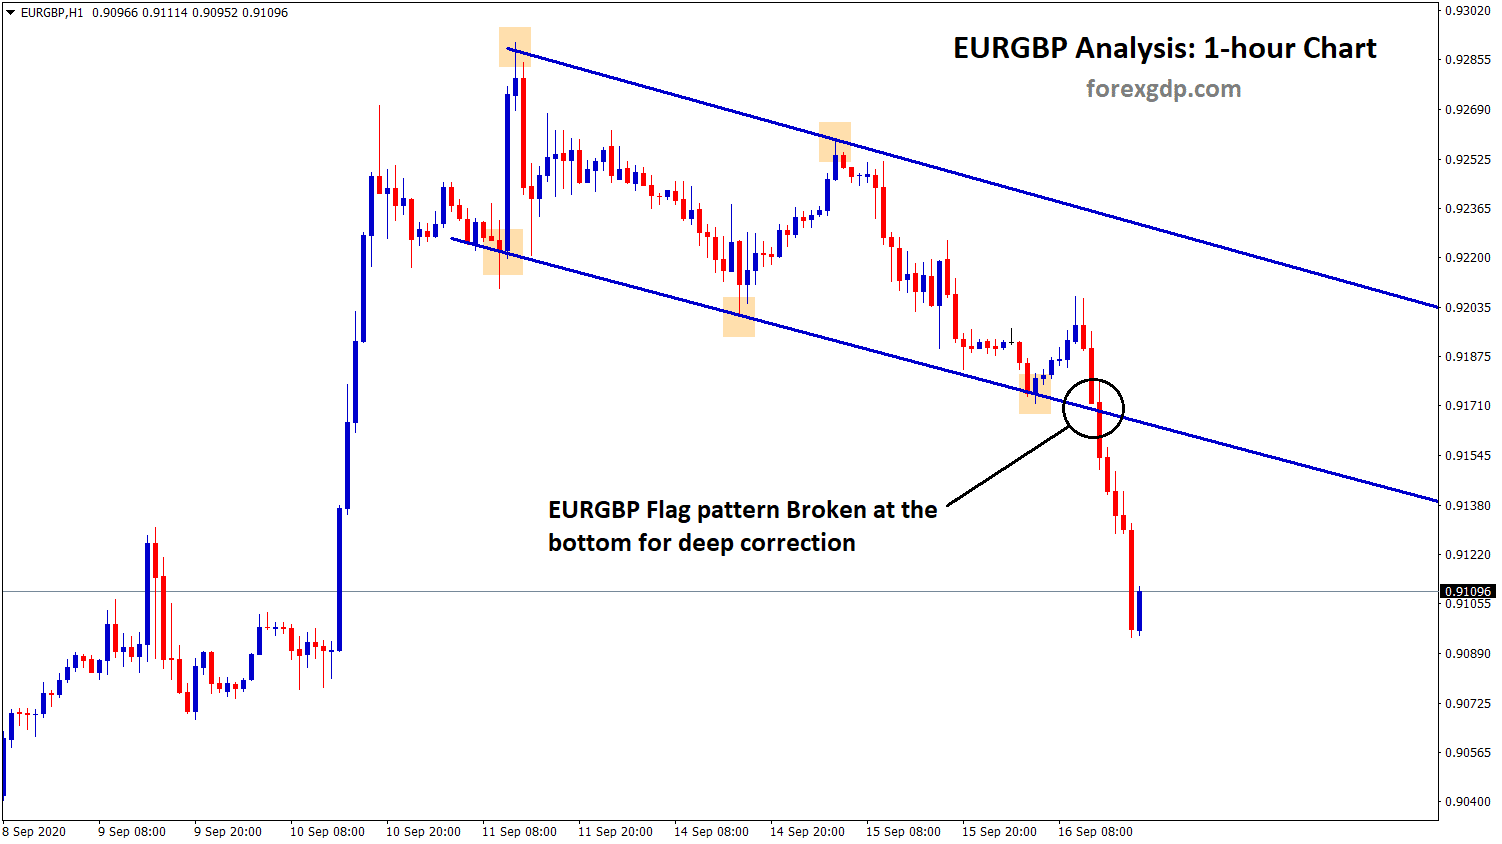 eurgbp flag pattern broken and reached stop loss price